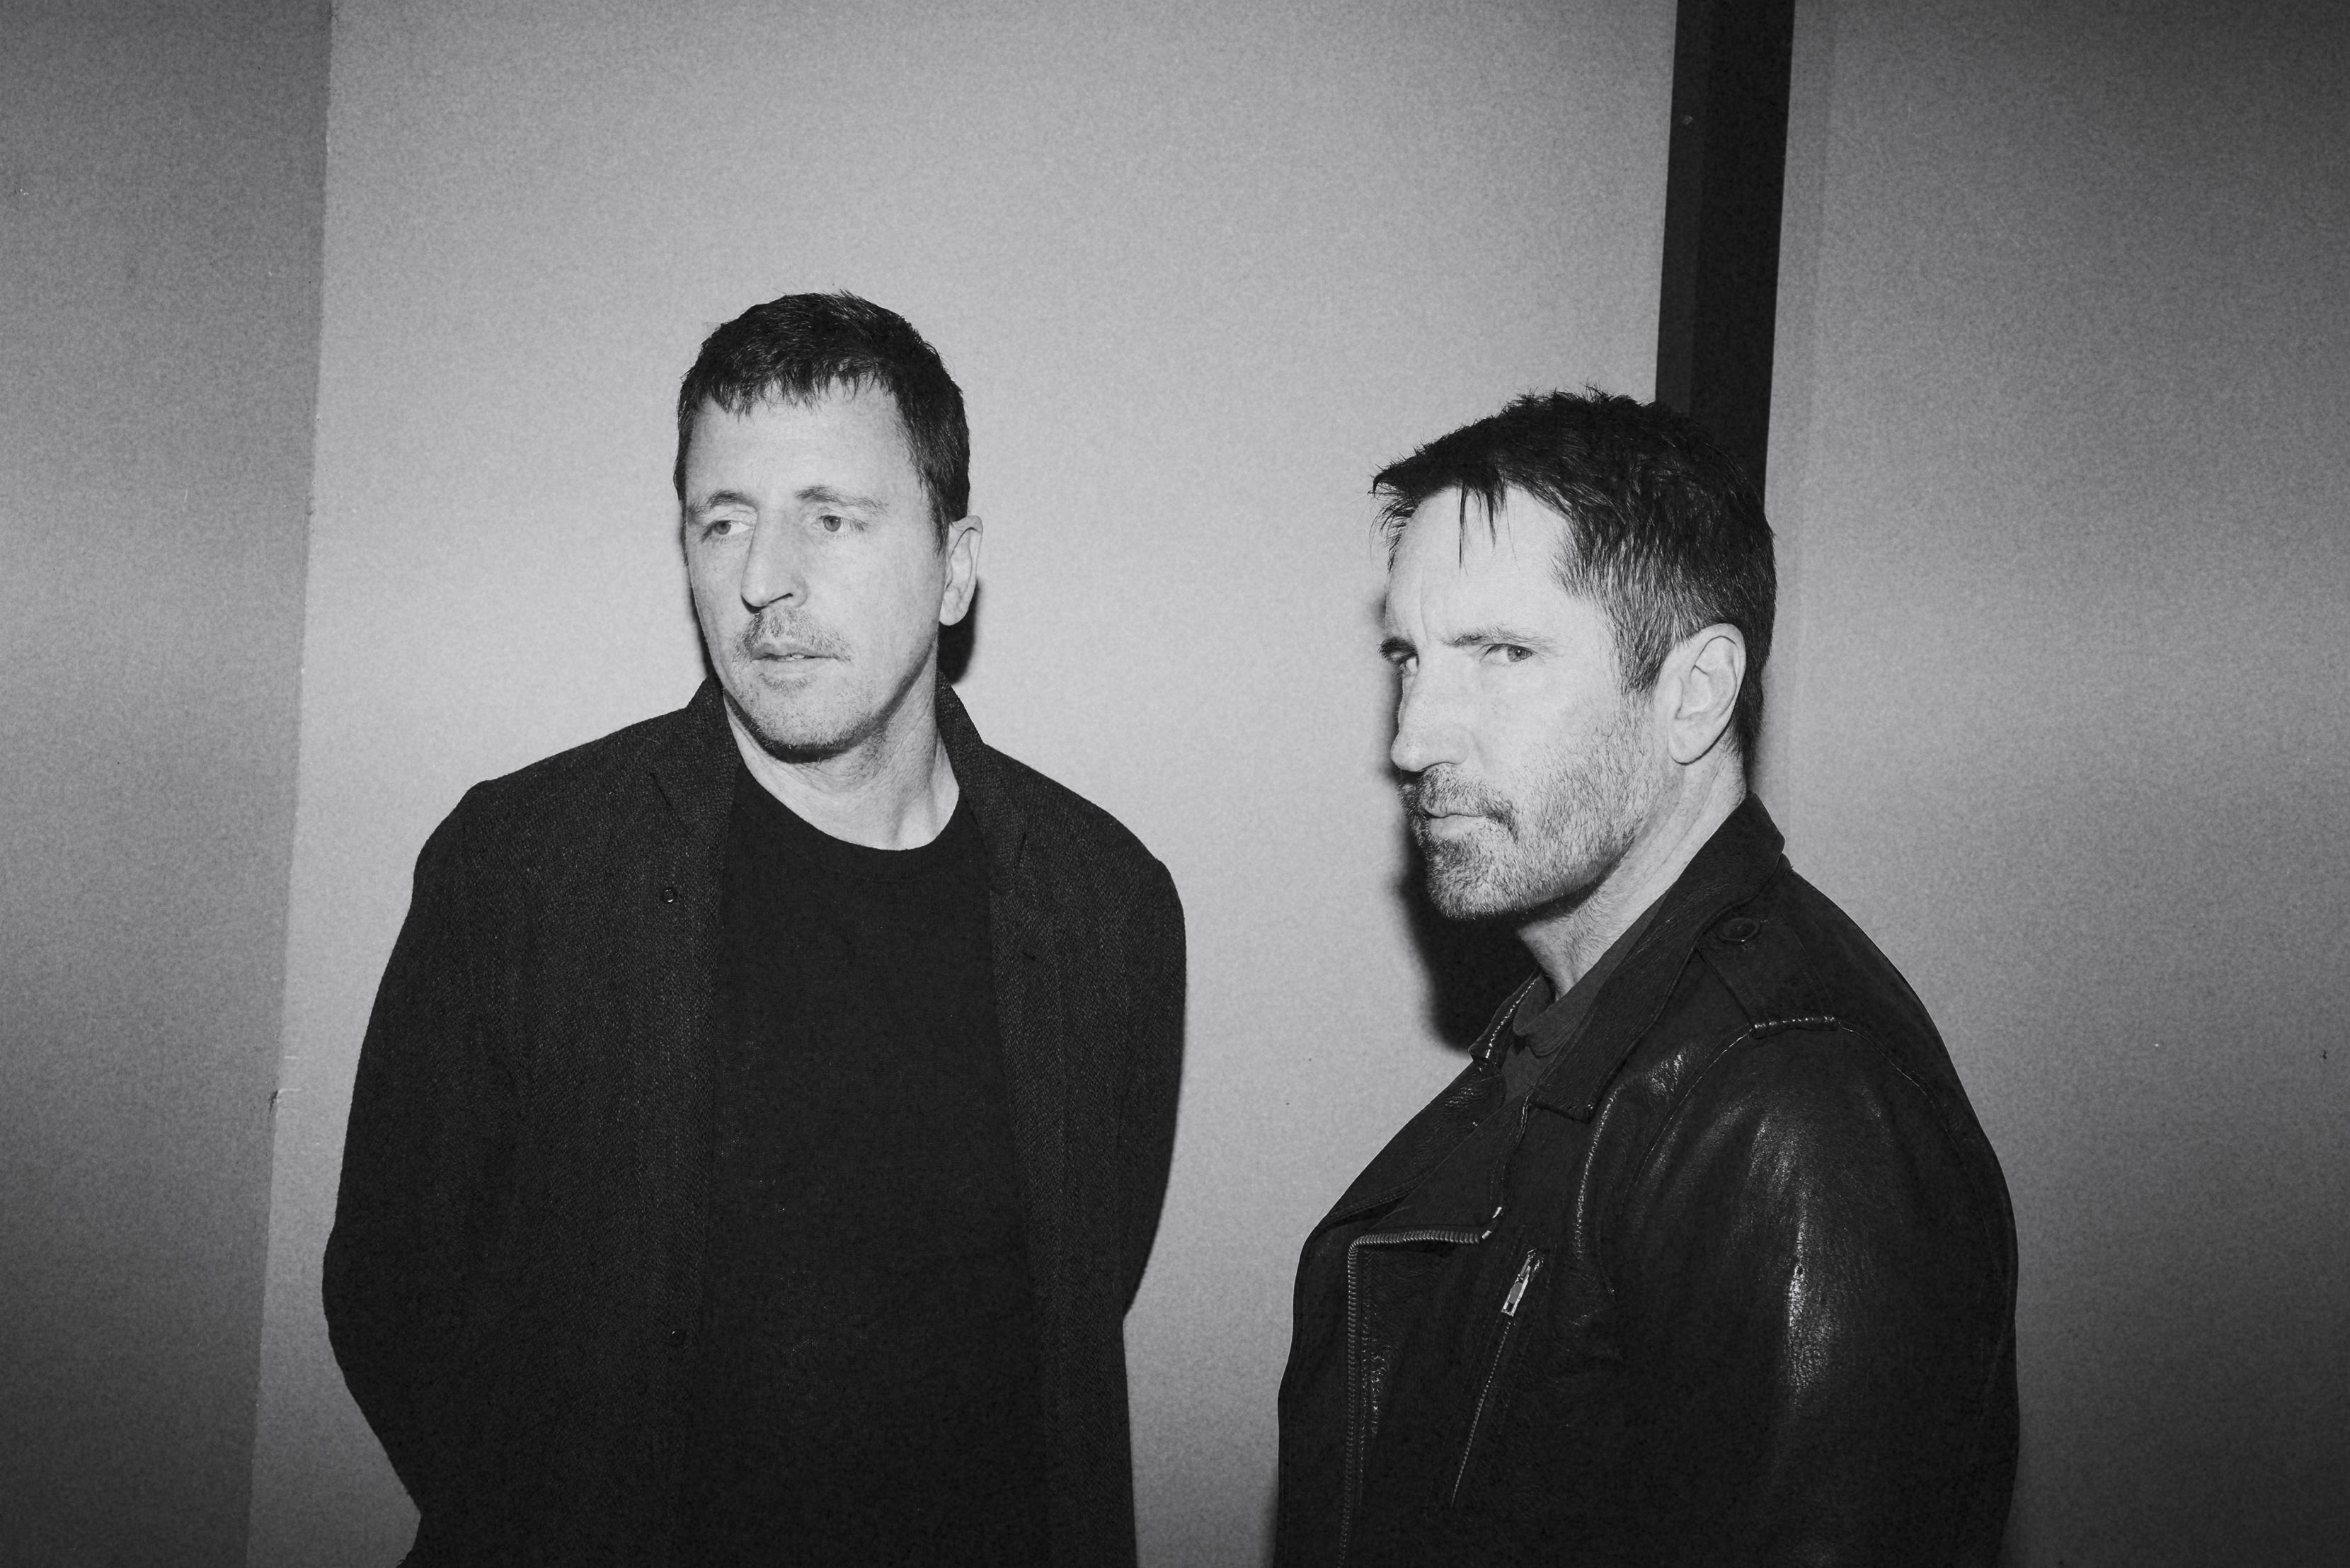 Influencers: Trent Reznor and Atticus Ross Pioneered a New Sound for Hollywood Scores